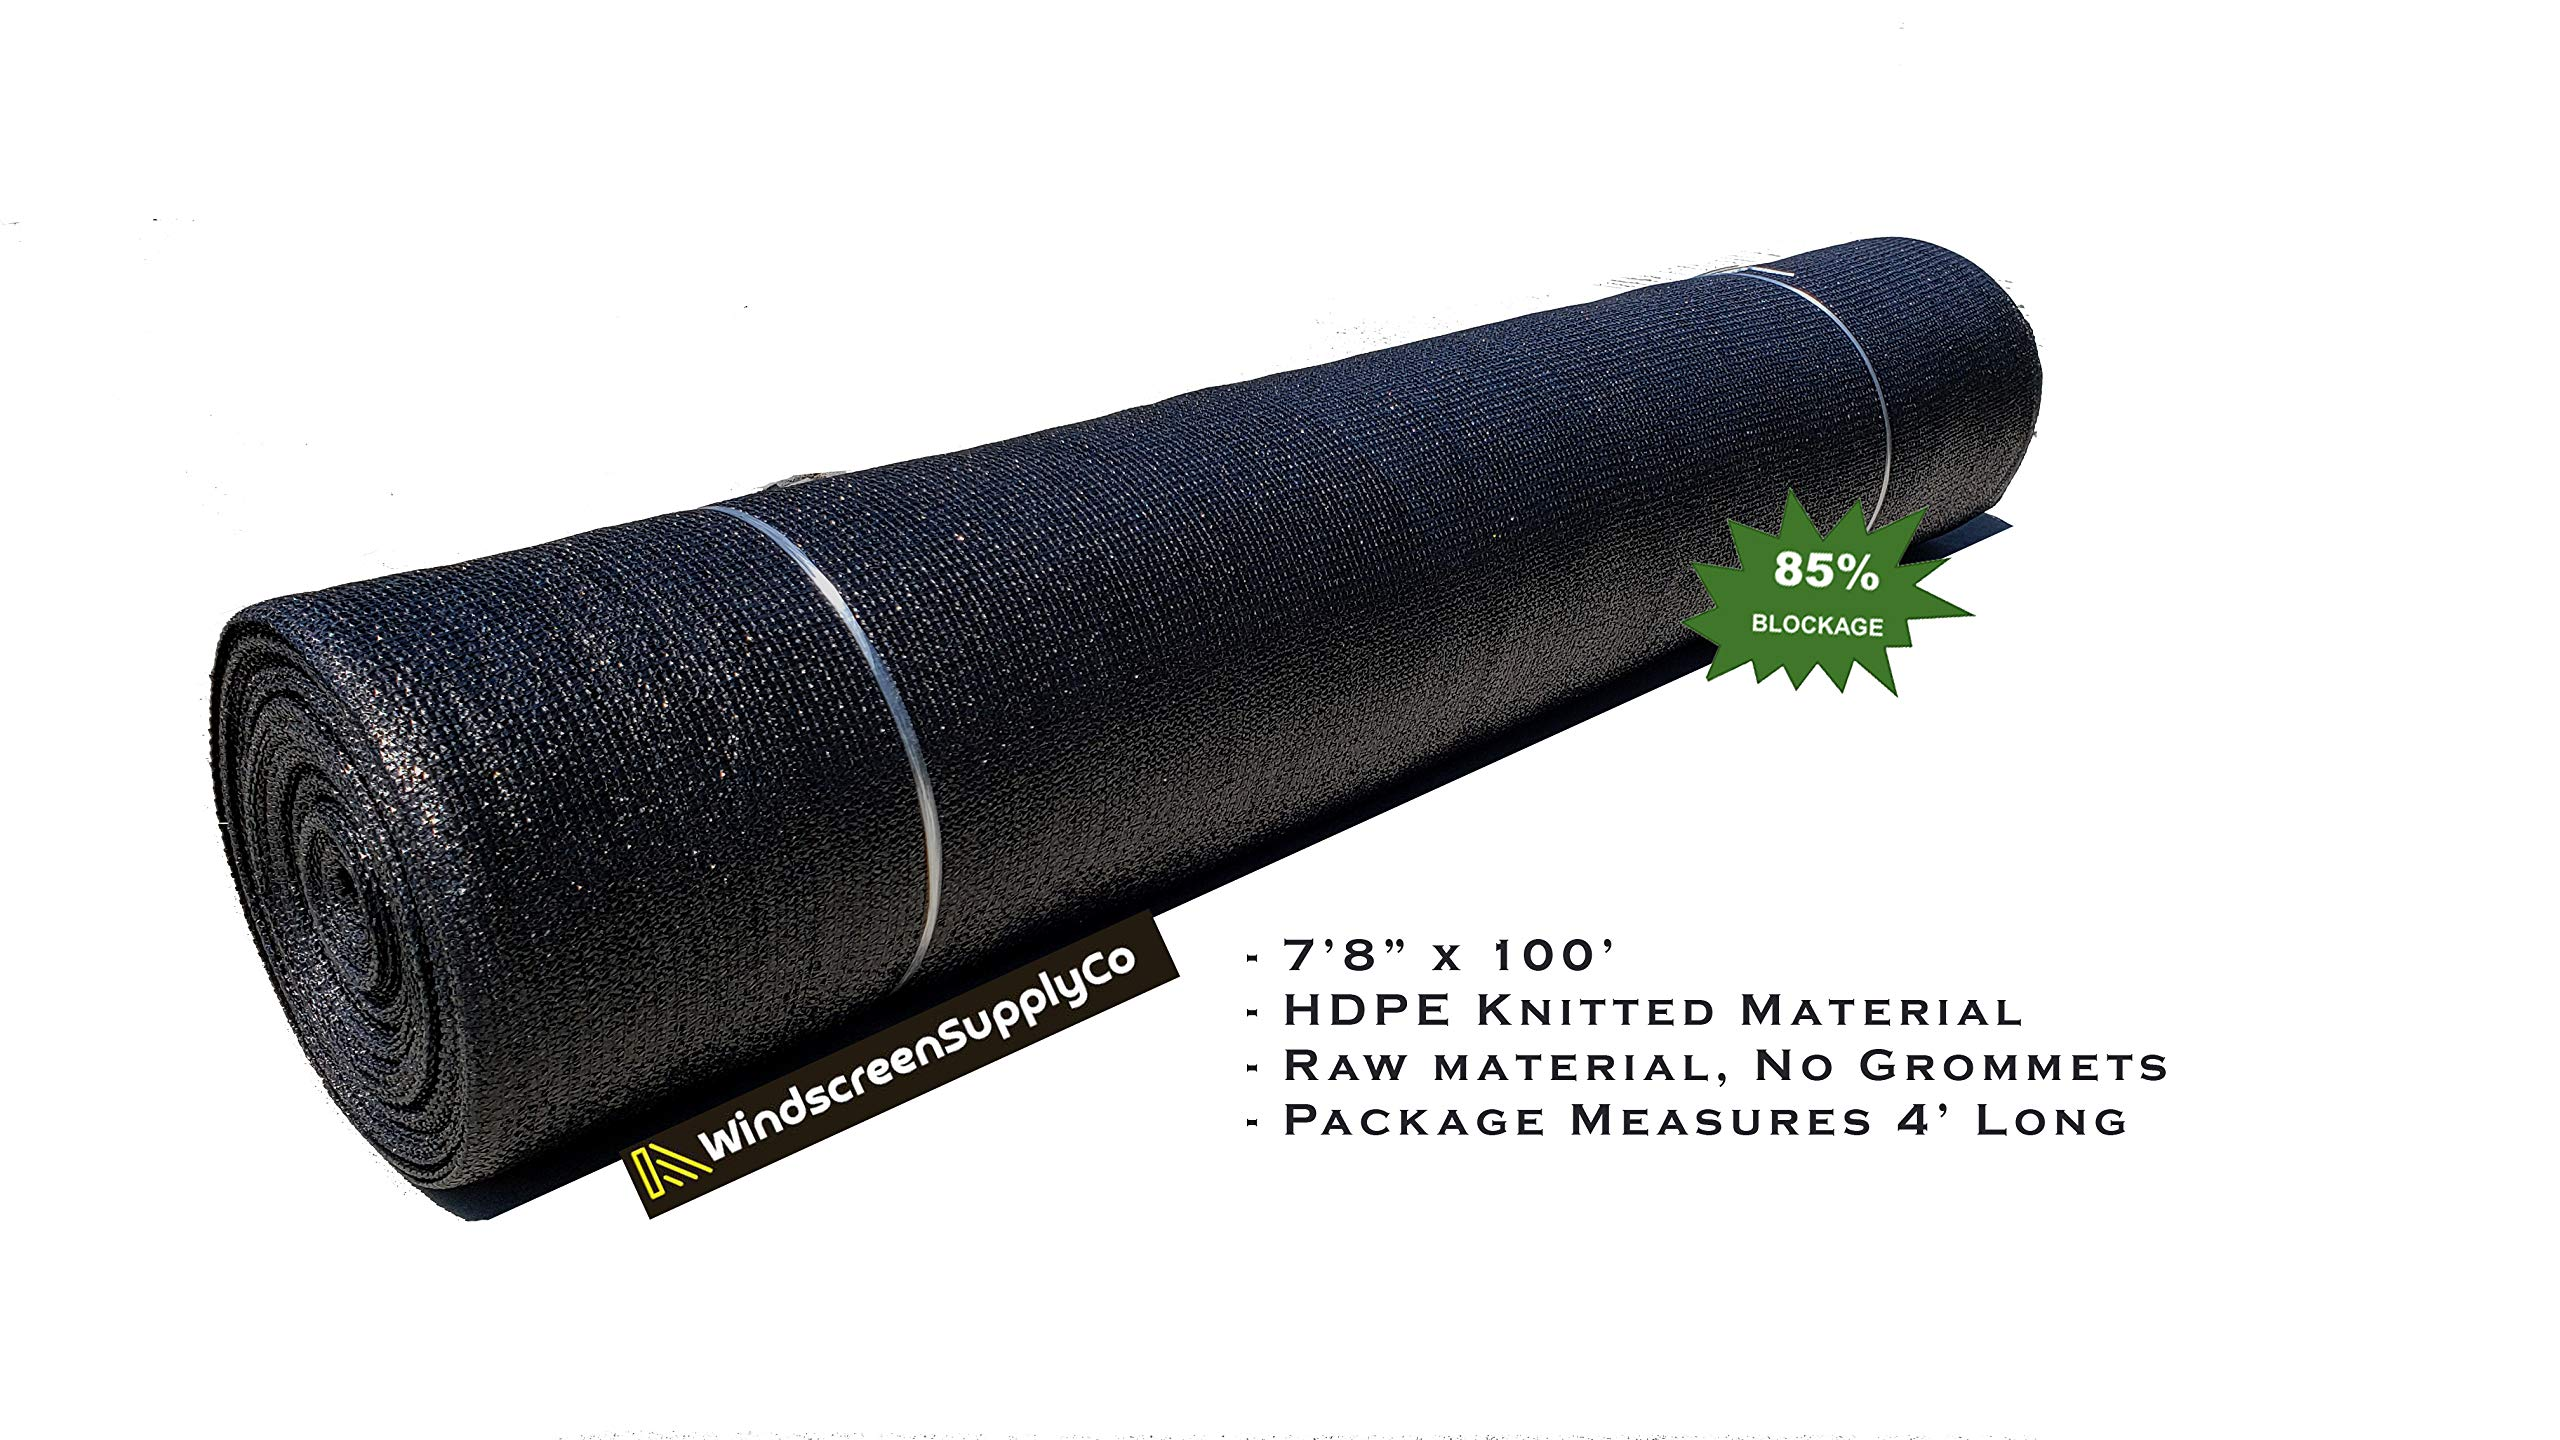 WindscreenSupplyCo 7'8'' X 100 ft. Shade Fabric Roll Sunblock Shade Cloth, 85% UV Resistant Mesh Netting Cover (1, Black) by WindscreenSupplyCo